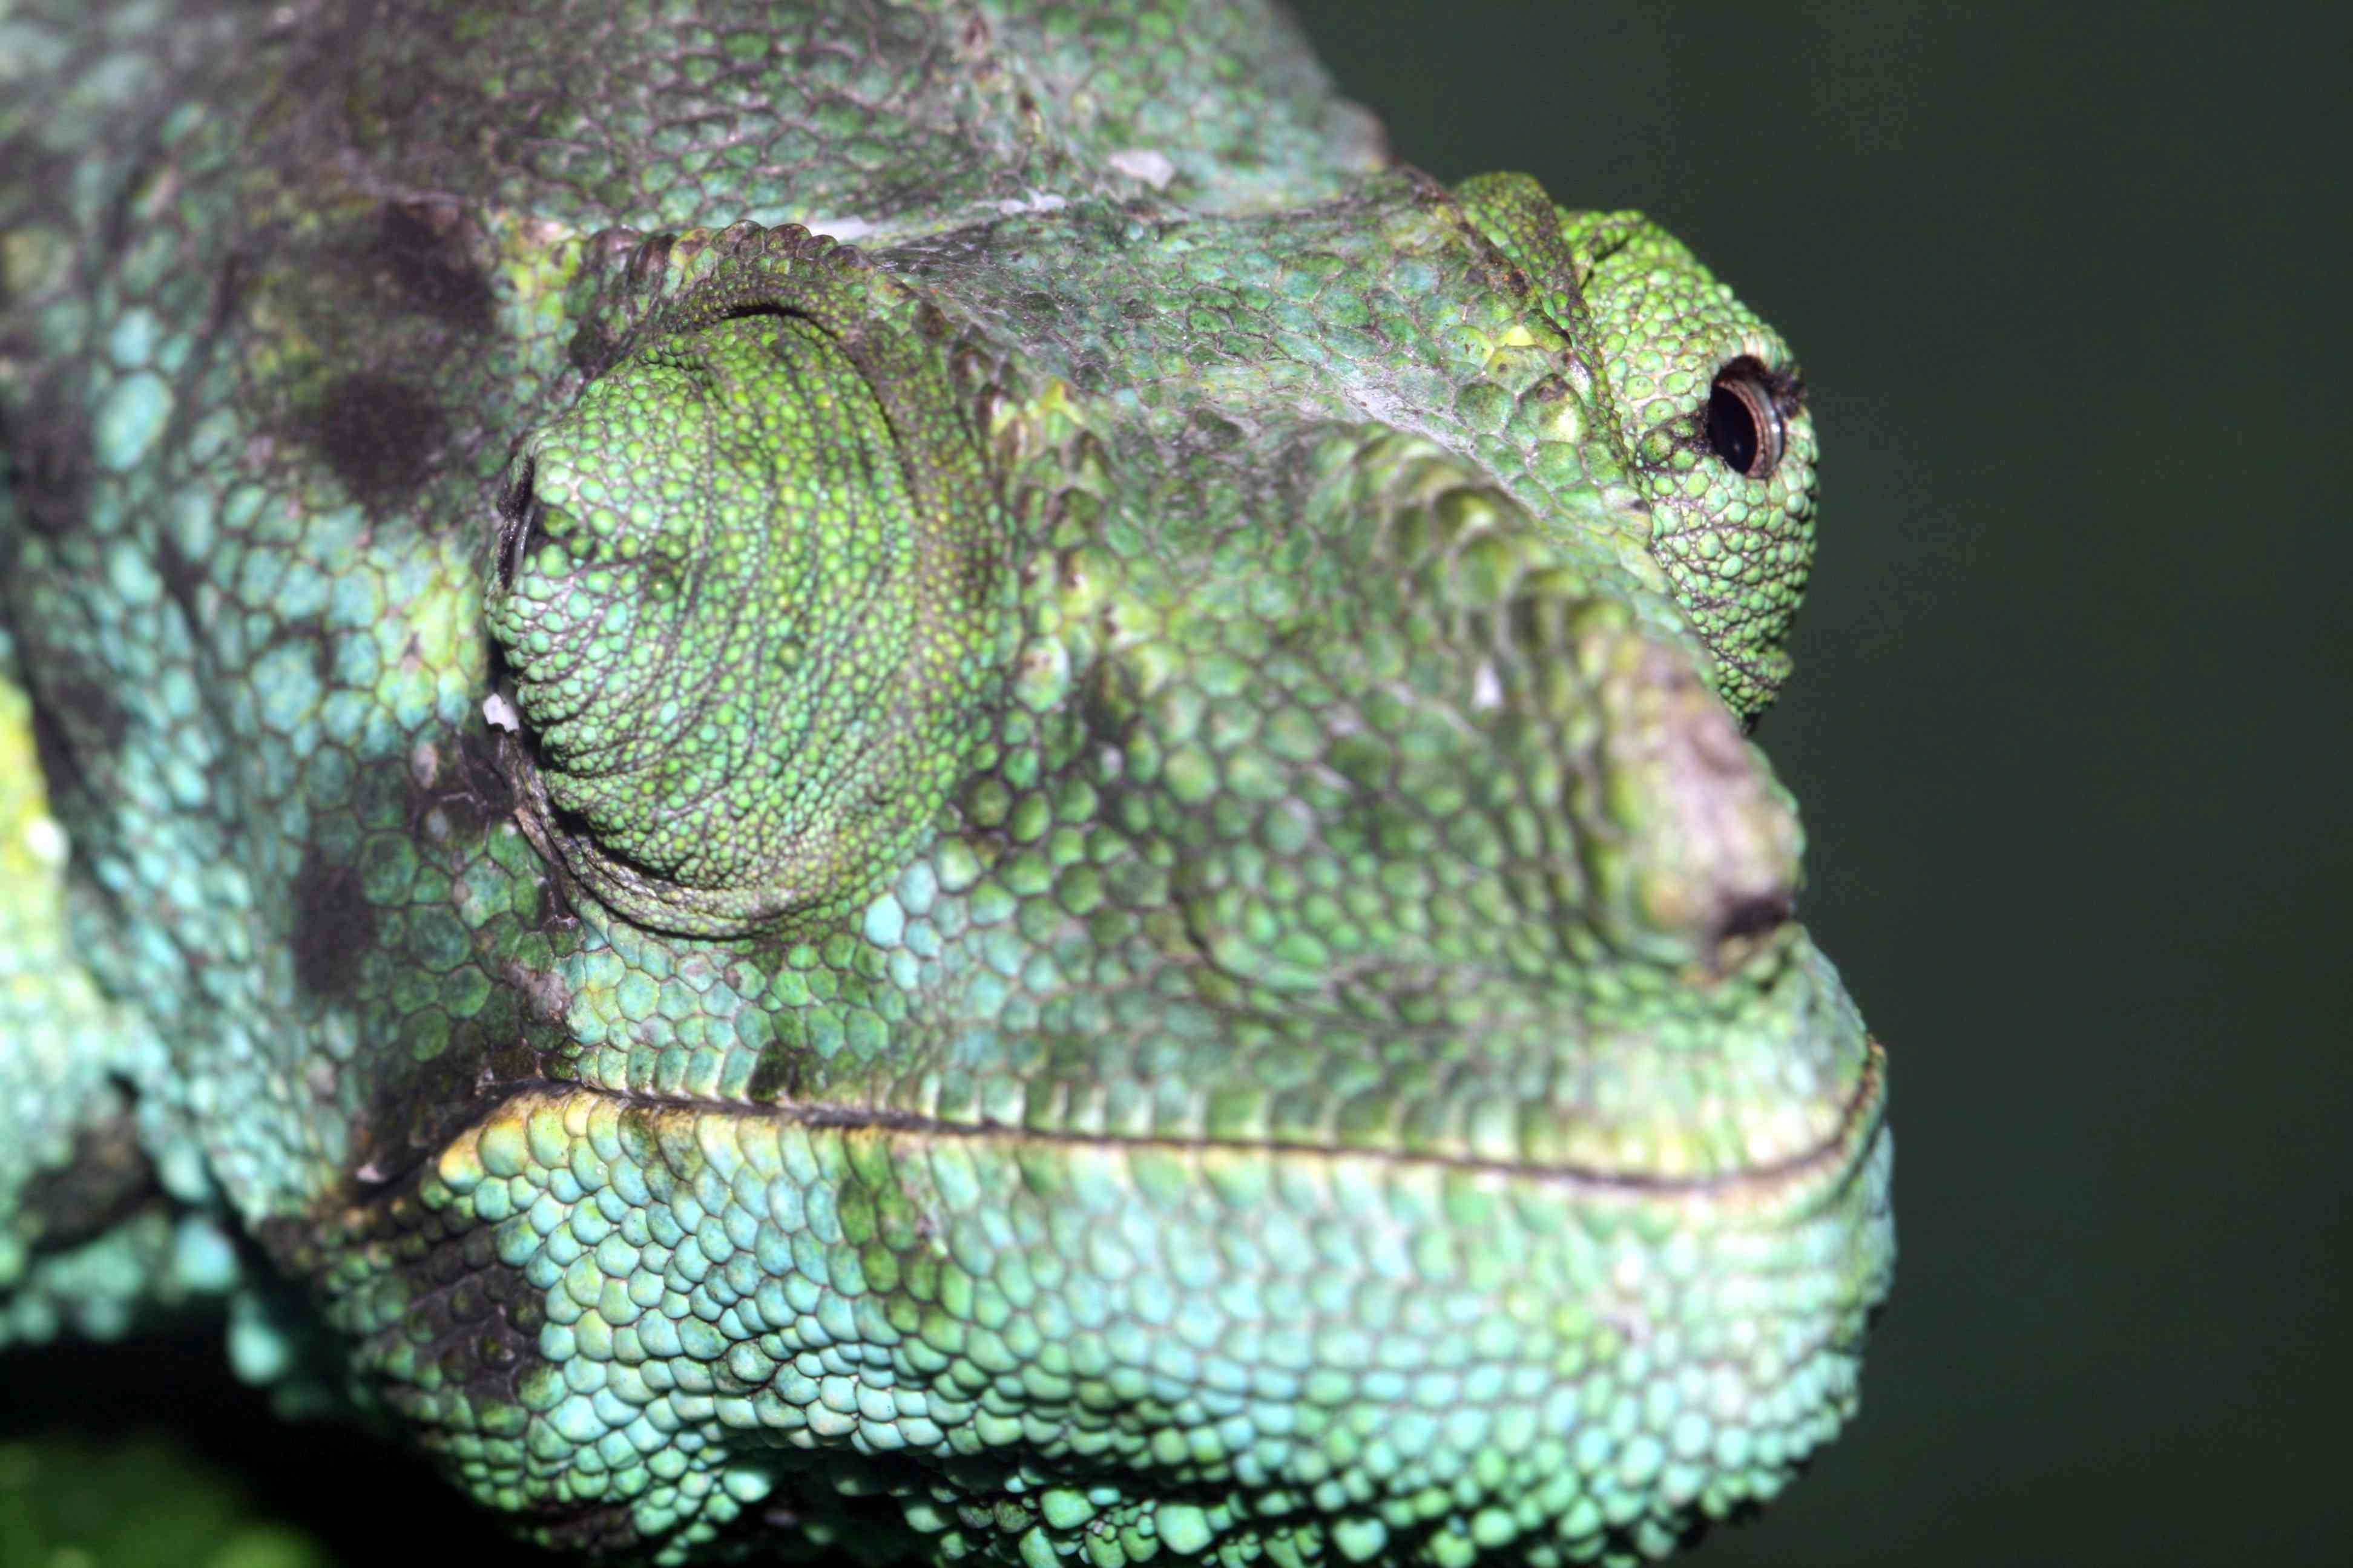 A chameleon with each focused in a different direction